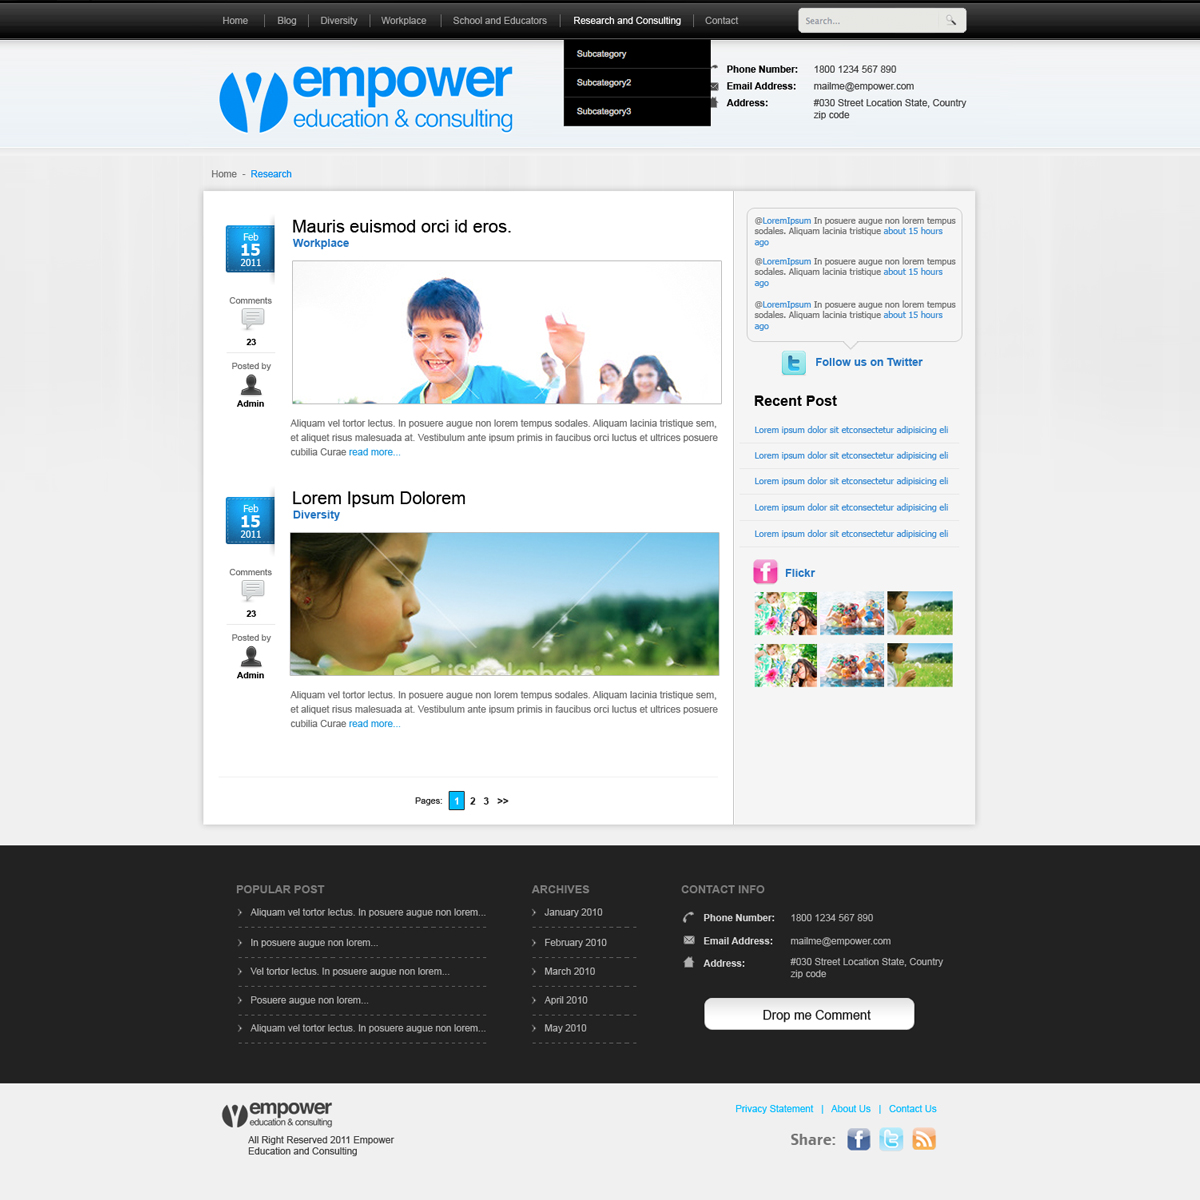 Web Page Design by rockpinoy - Entry No. 41 in the Web Page Design Contest Empowered Design.